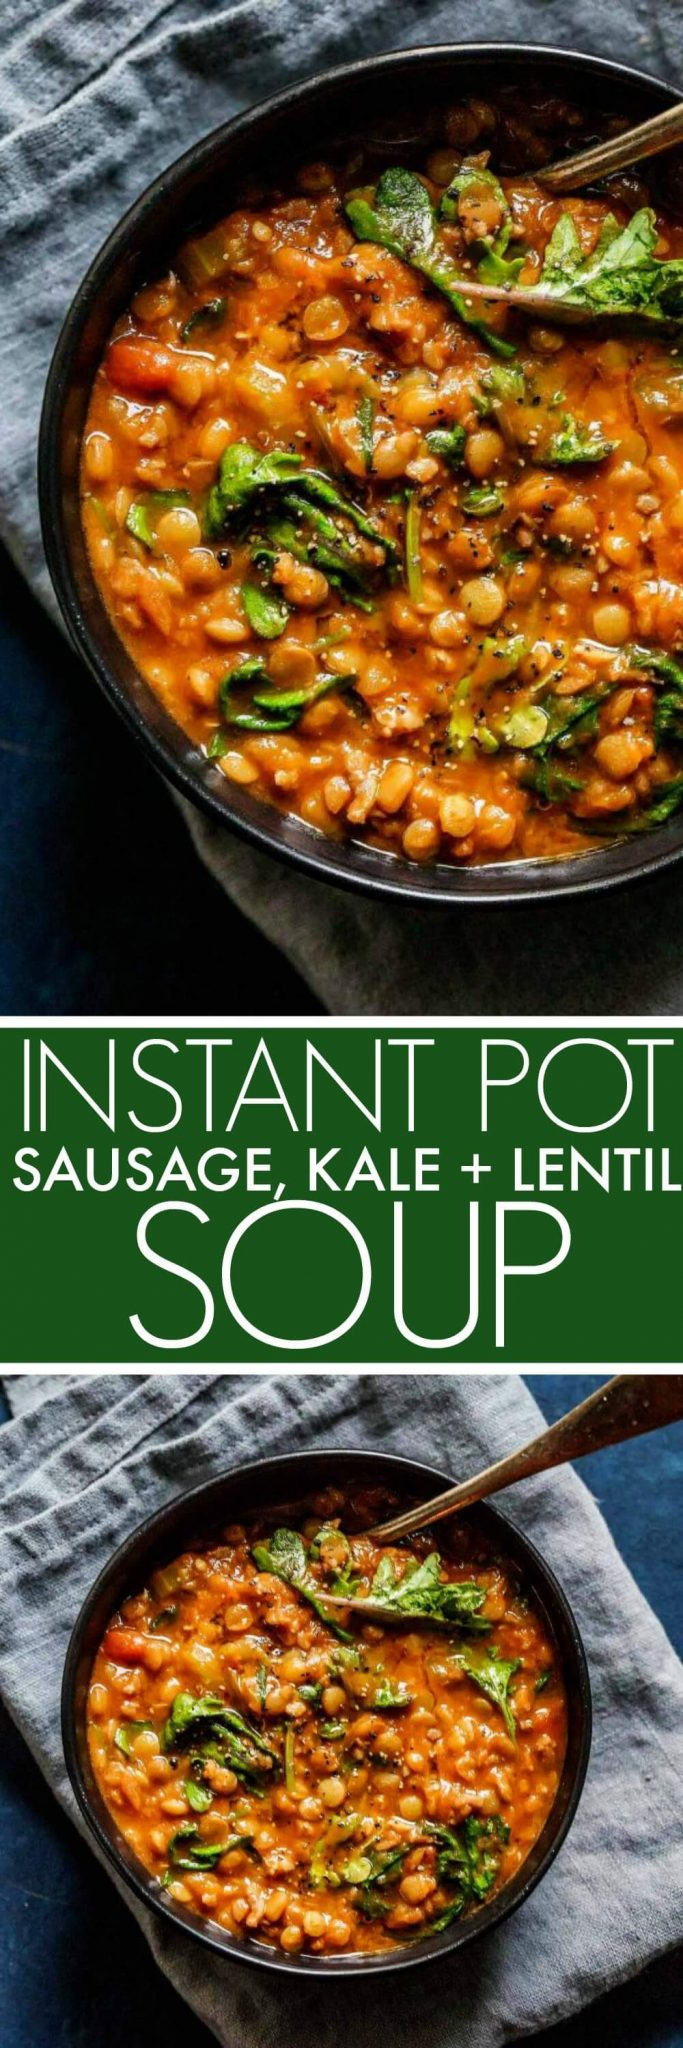 Instant Pot Lentil Soup with Sausage & Kale comes together quickly with the help of your electric pressure cooker. It's a hearty soup that's perfect for chilly days. #soup #lentilsoup #instantpot #pressurecooker #healthy